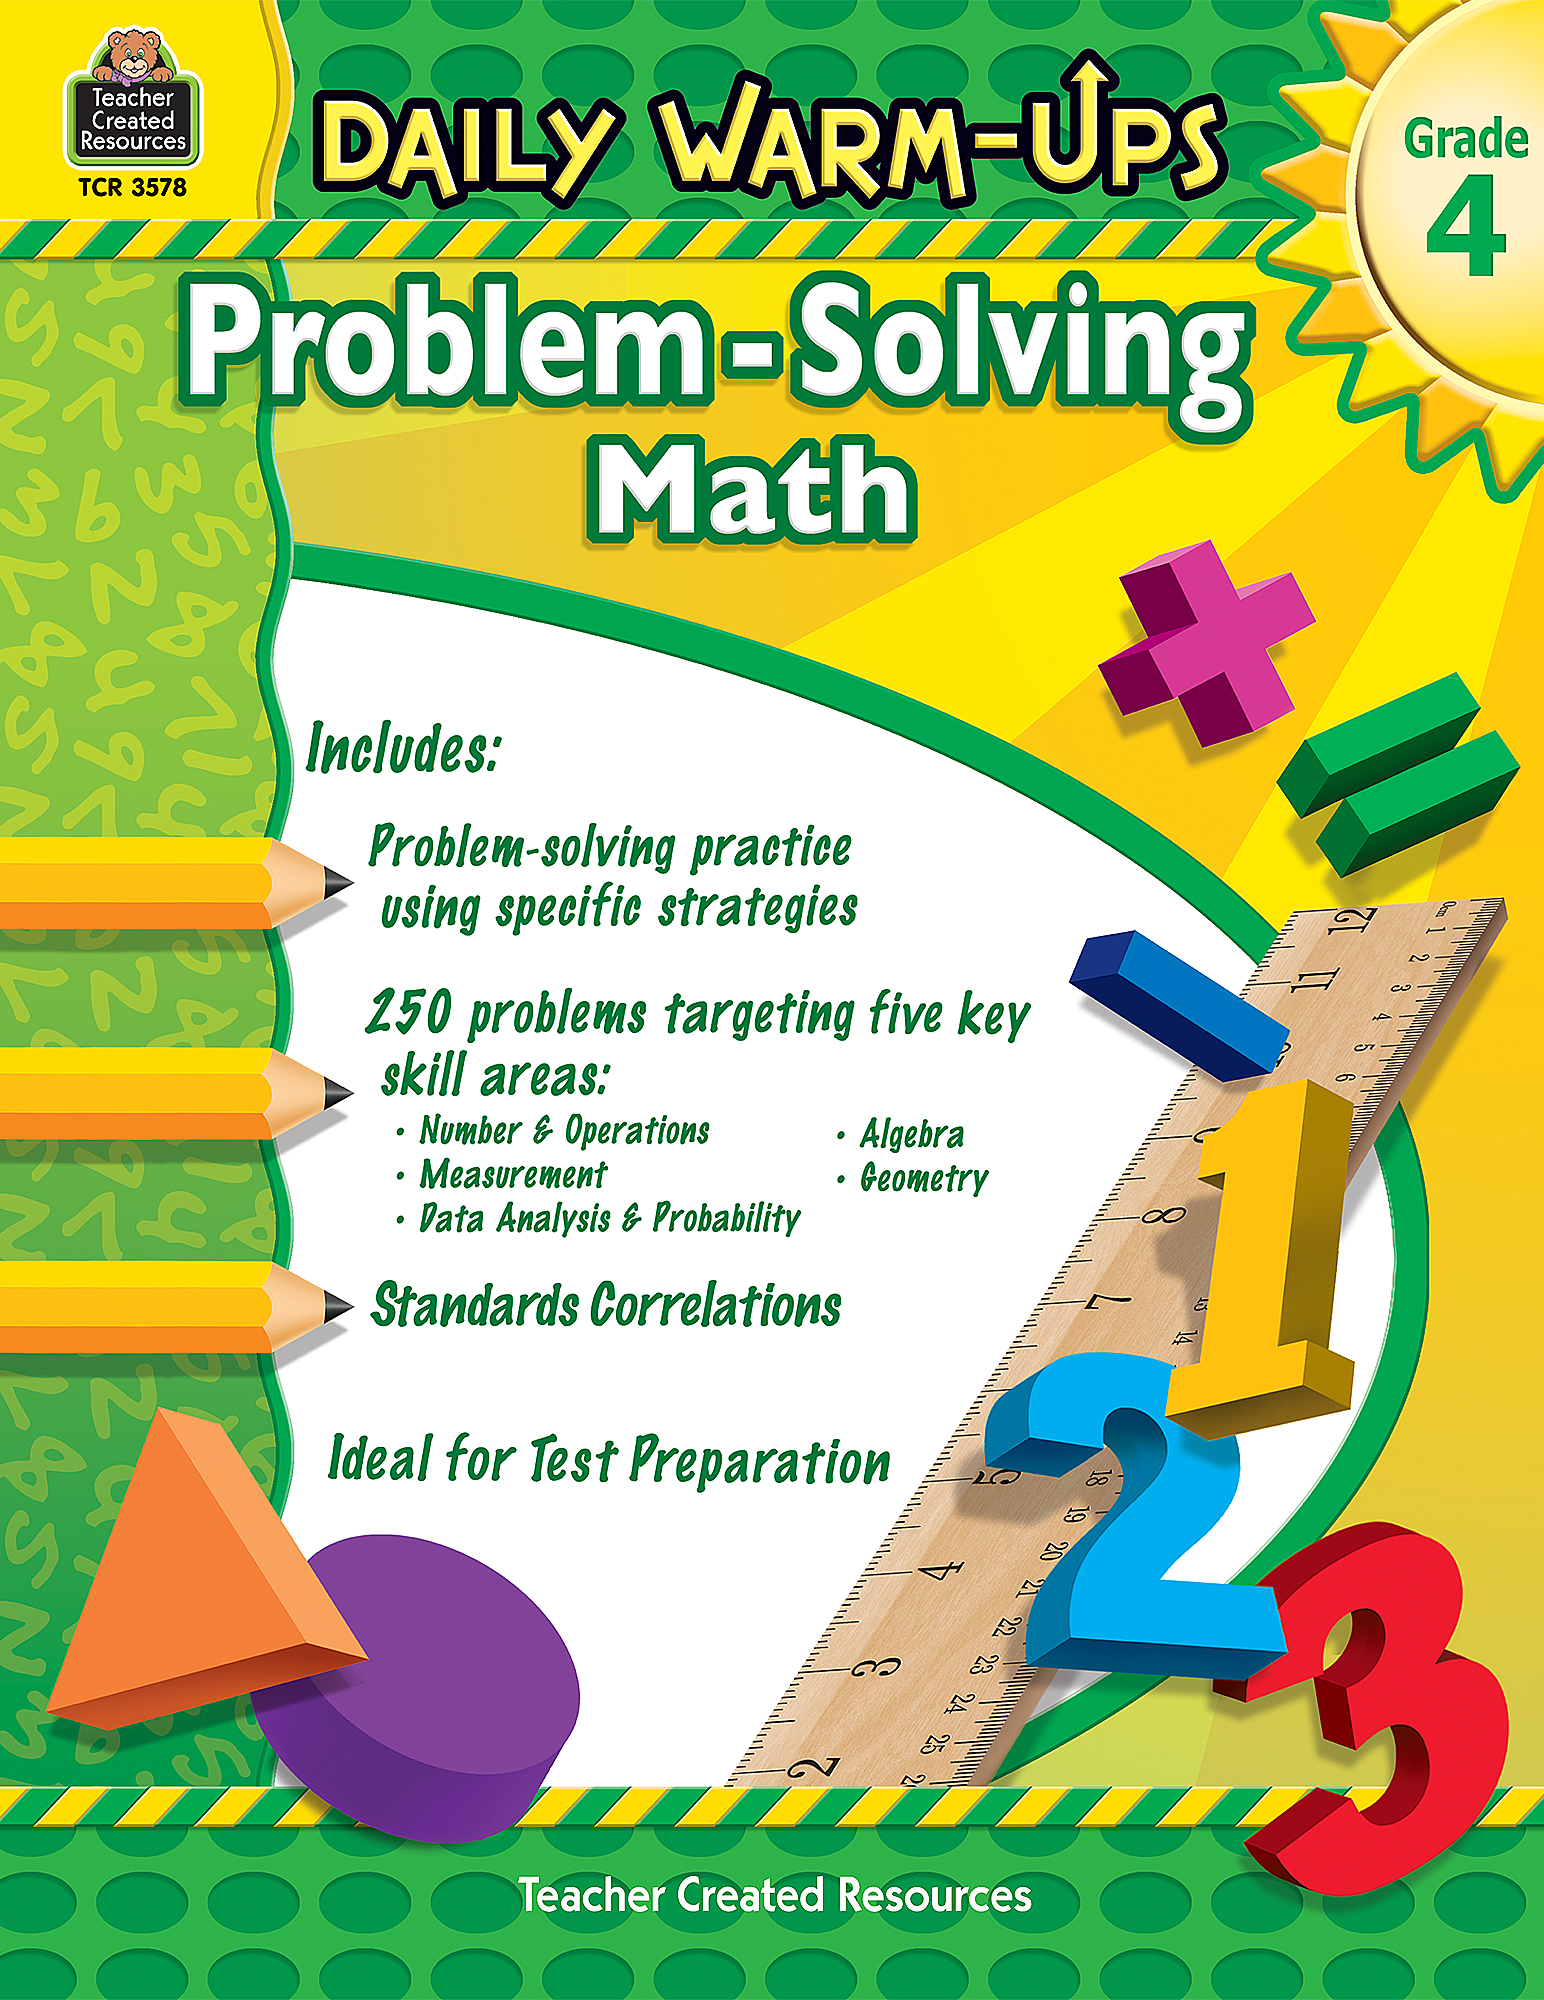 Worksheet Math Problem Solving For Grade 3 daily warm ups problem solving math grade 3 tcr3577 products 18 99 4